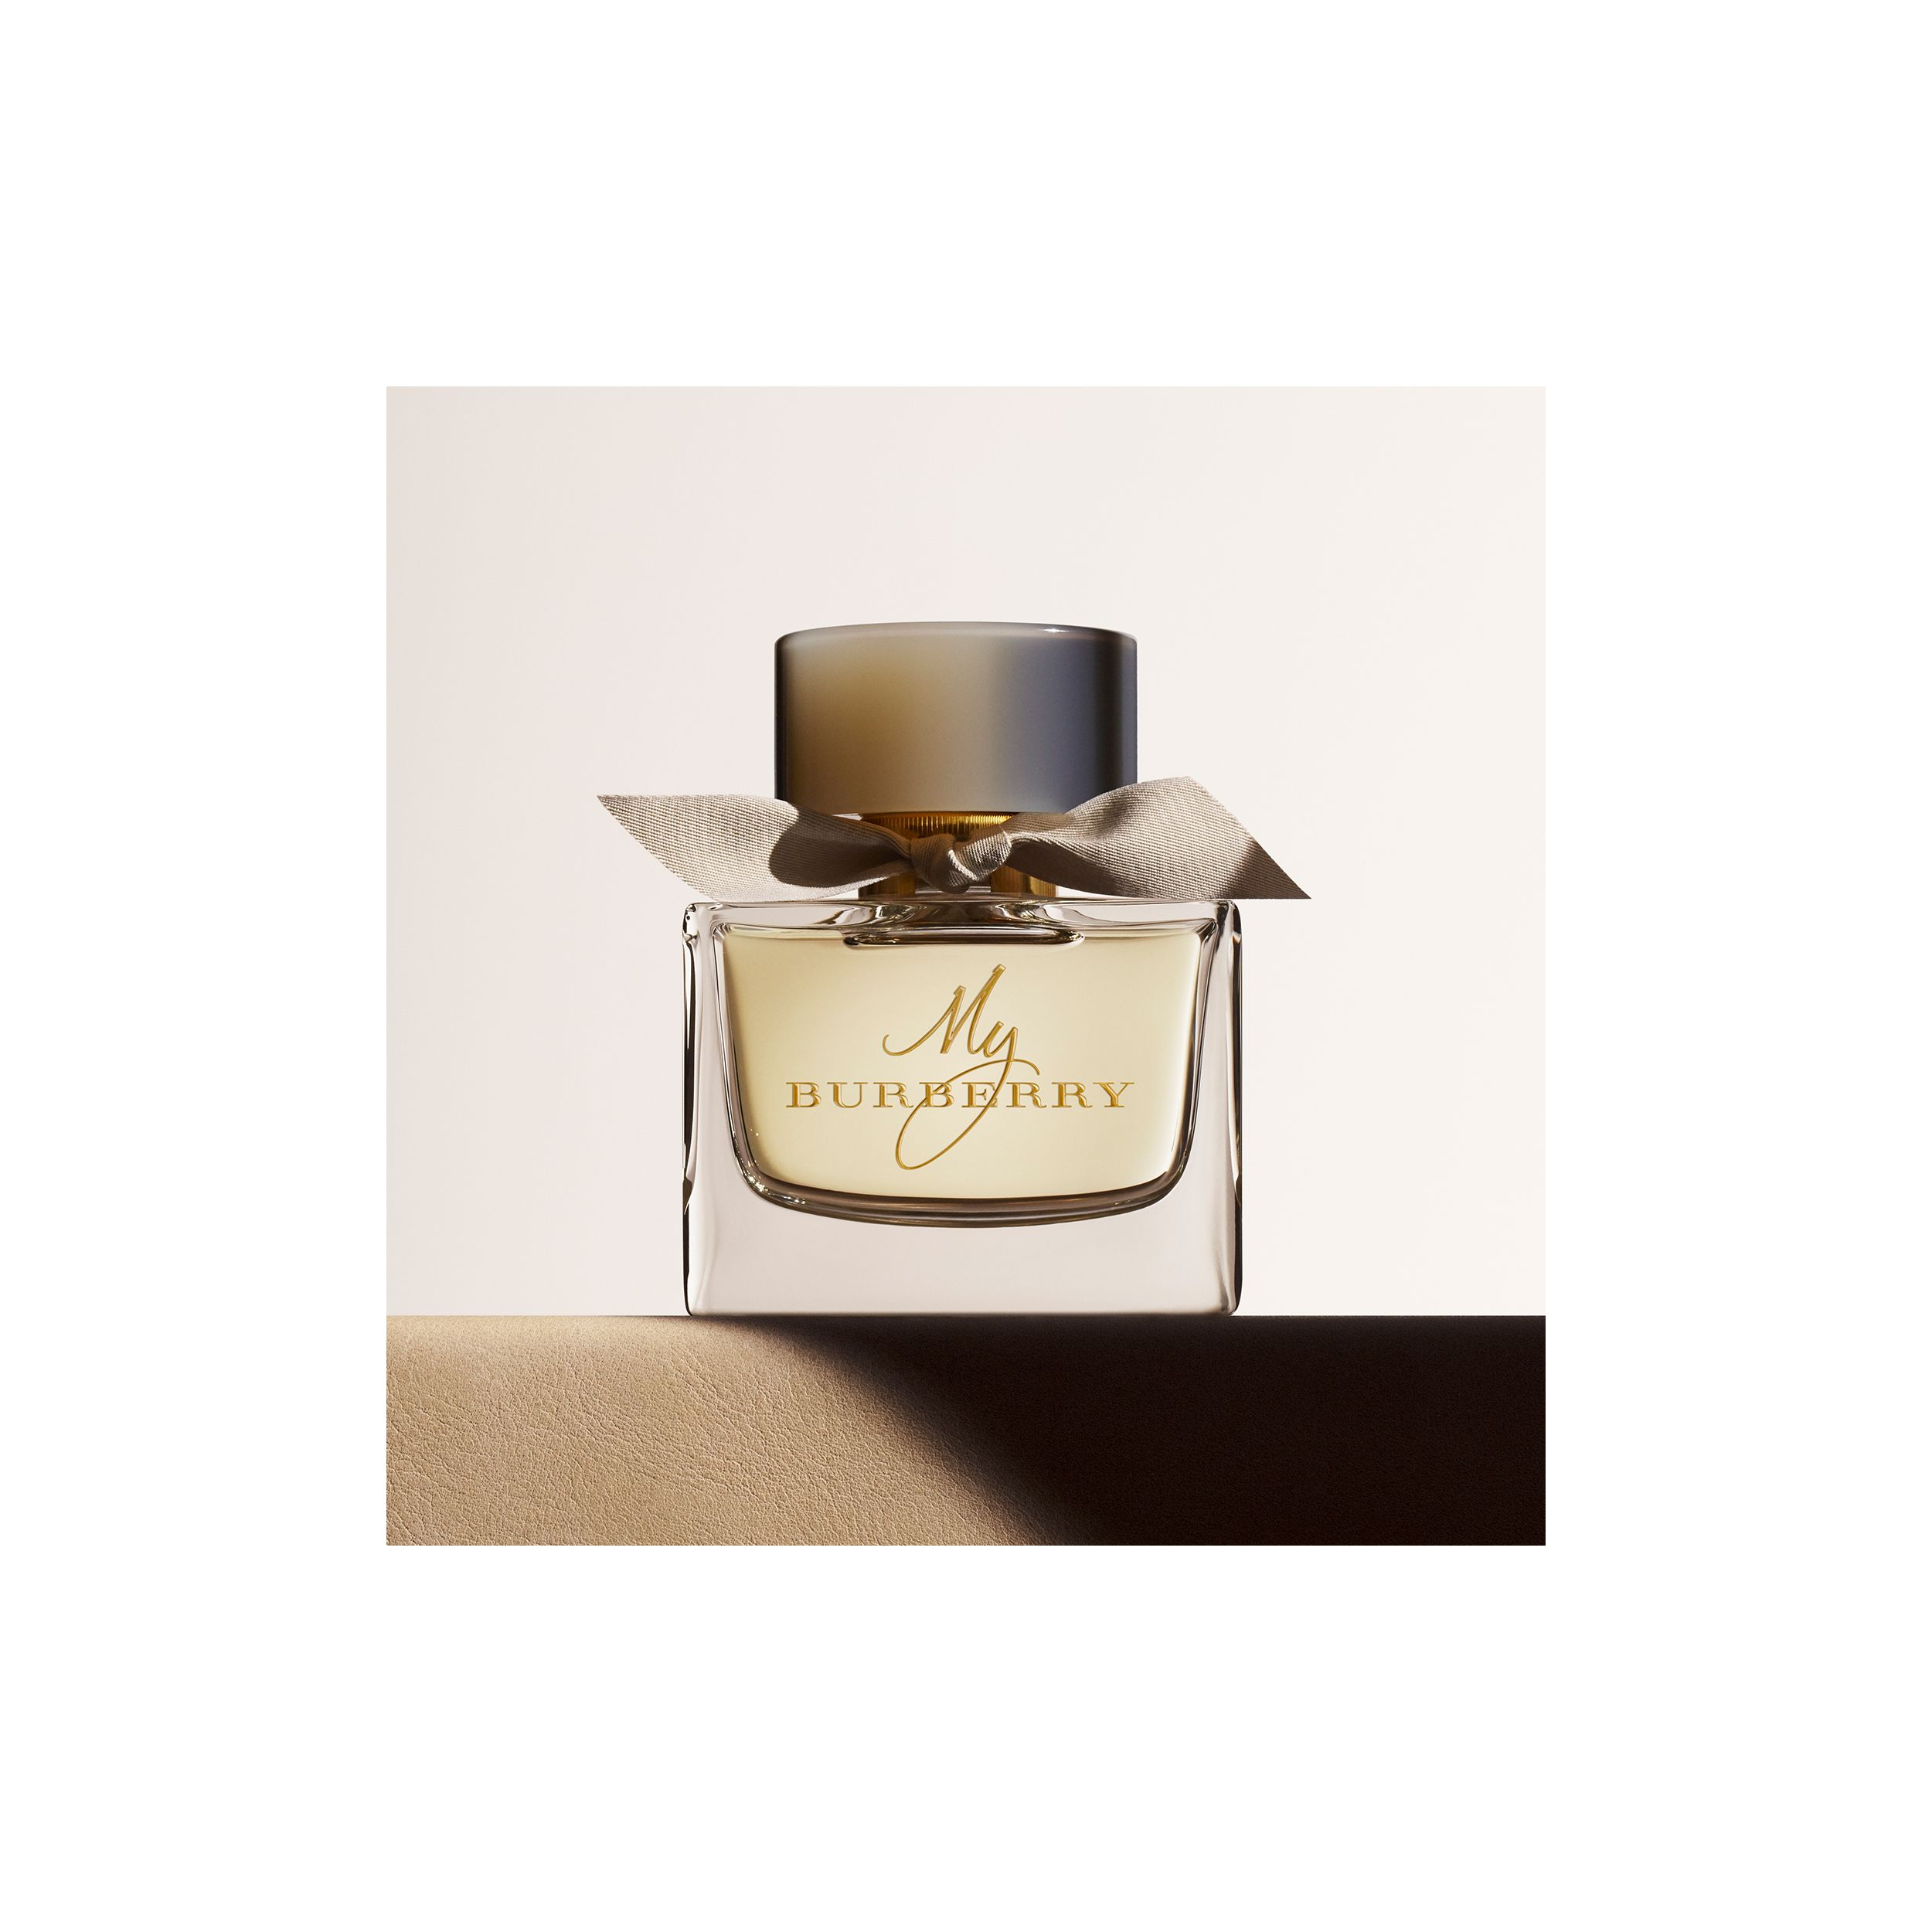 My Burberry Eau de Toilette 90ml - Women | Burberry United States - 2